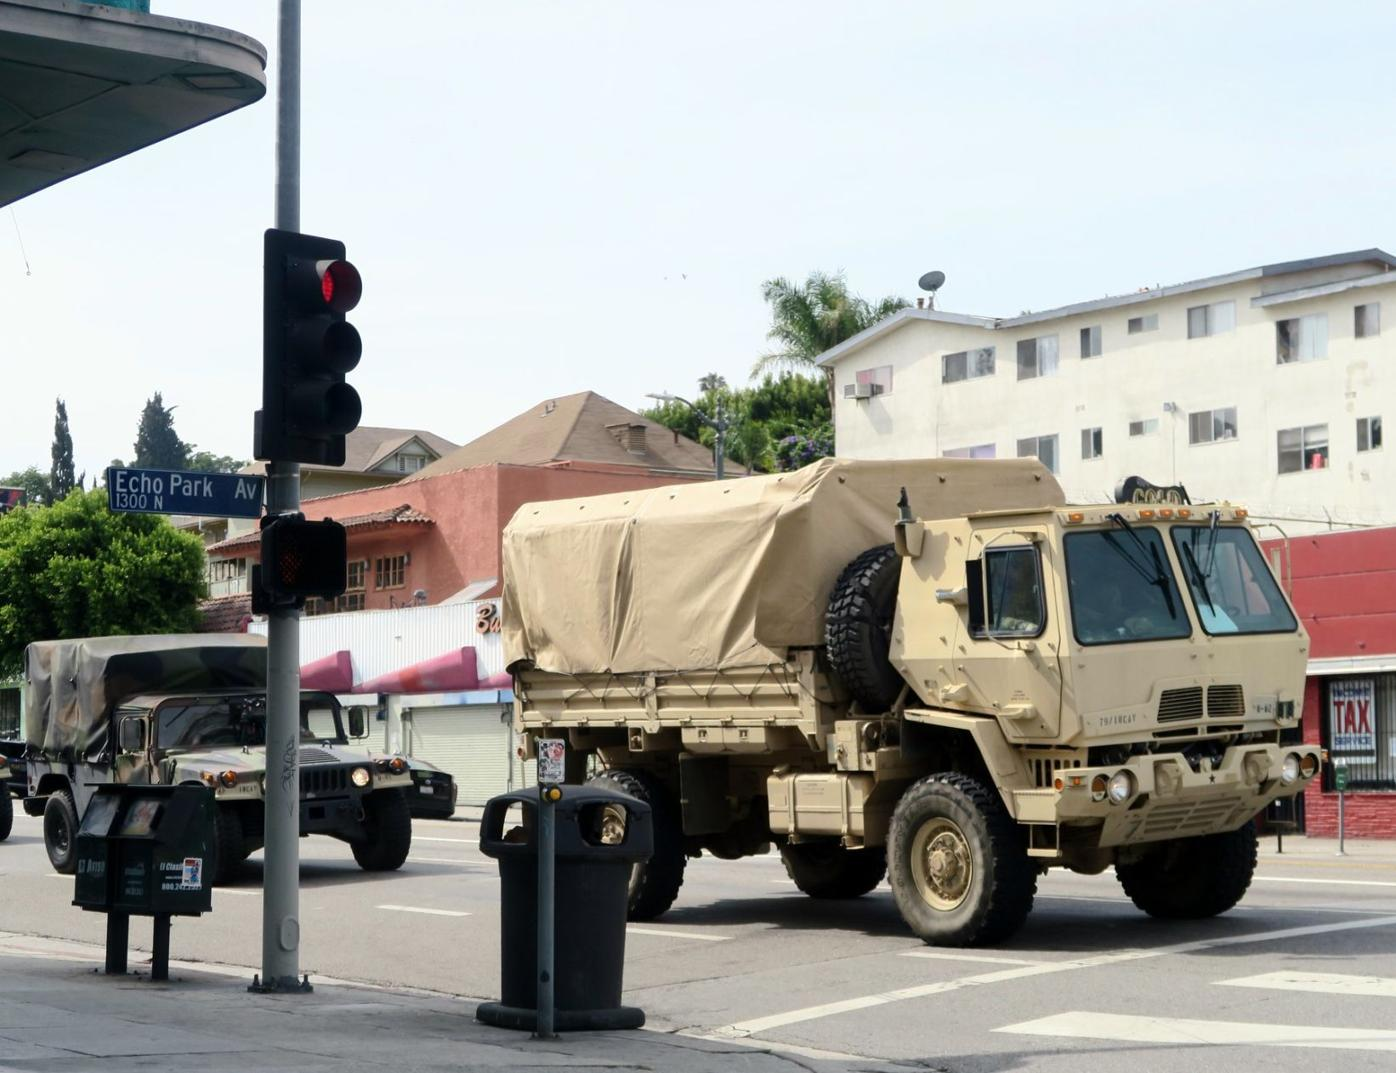 National Guard vehicle at Sunset Boulevard and Echo Park Ave.